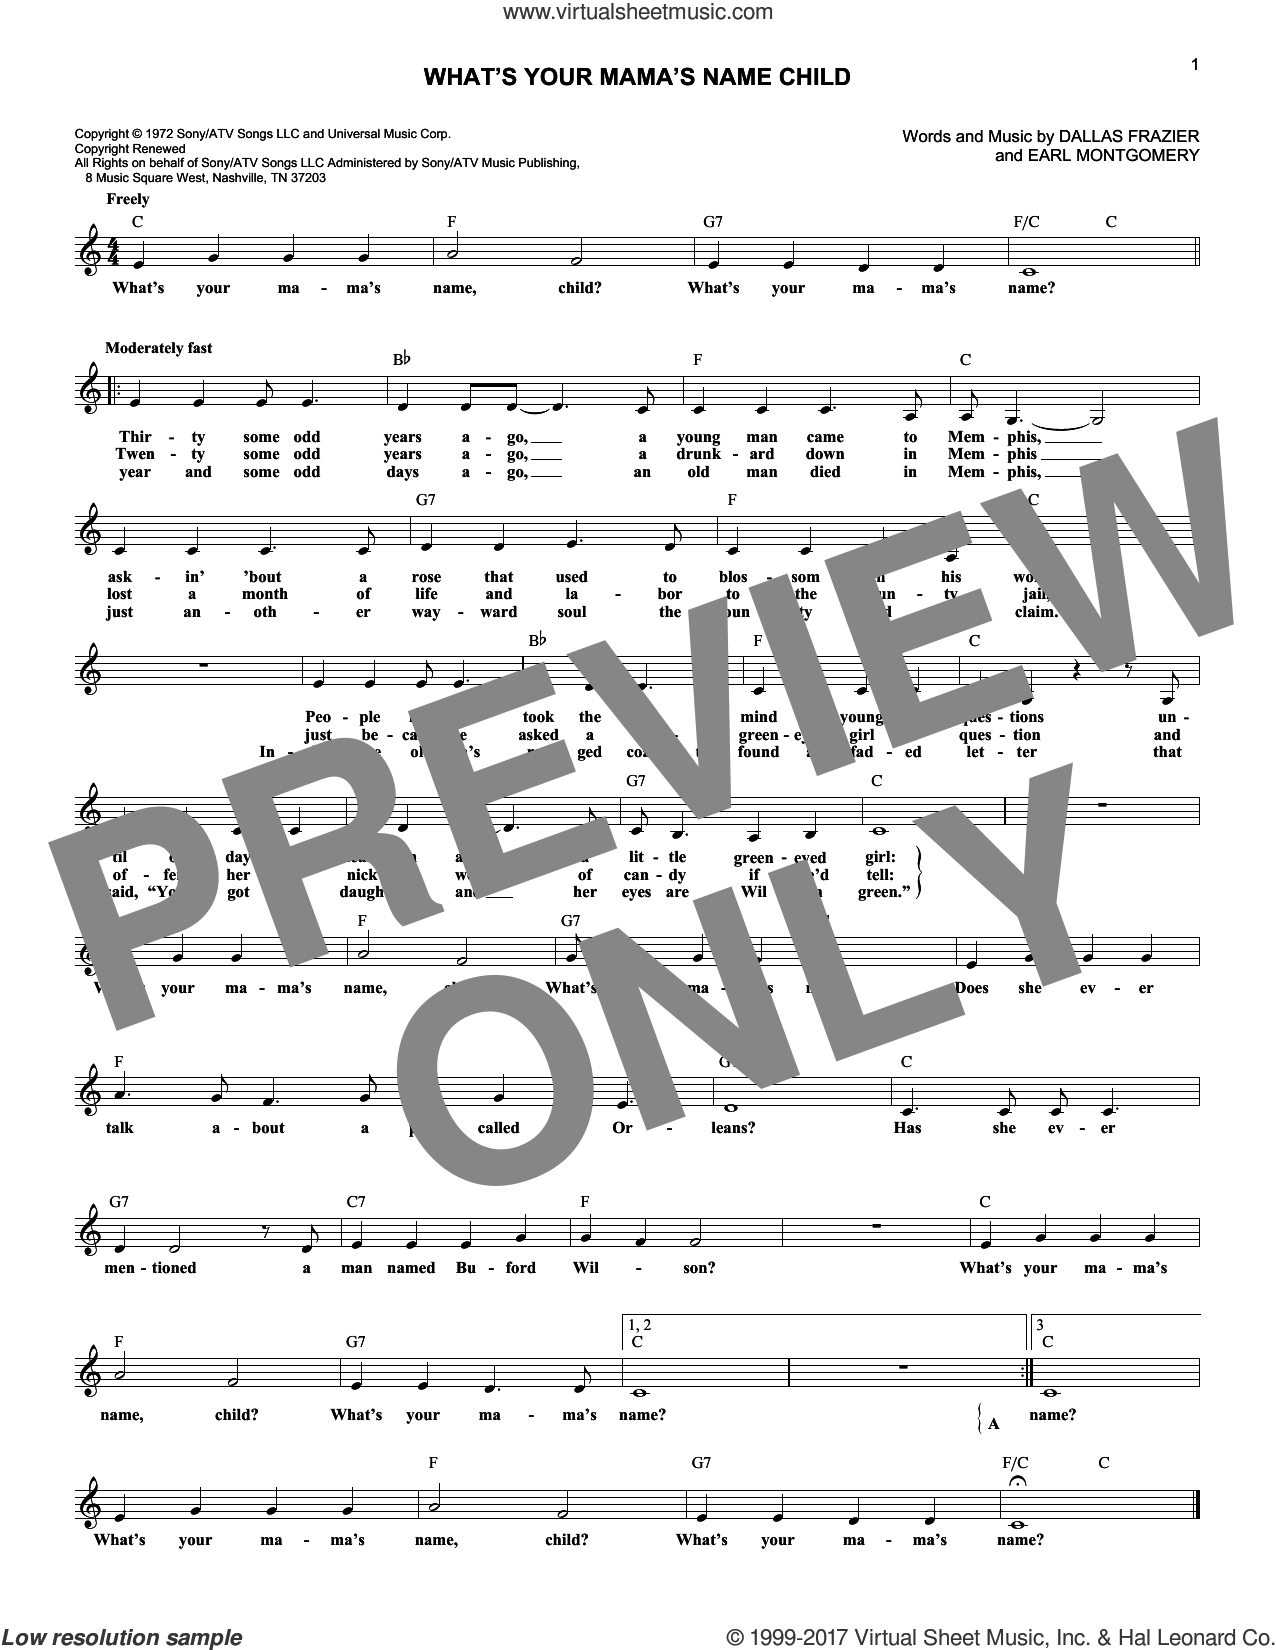 What's Your Mama's Name Child sheet music for voice and other instruments (fake book) by Tanya Tucker, Dallas Frazier and Earl Montgomery, intermediate skill level